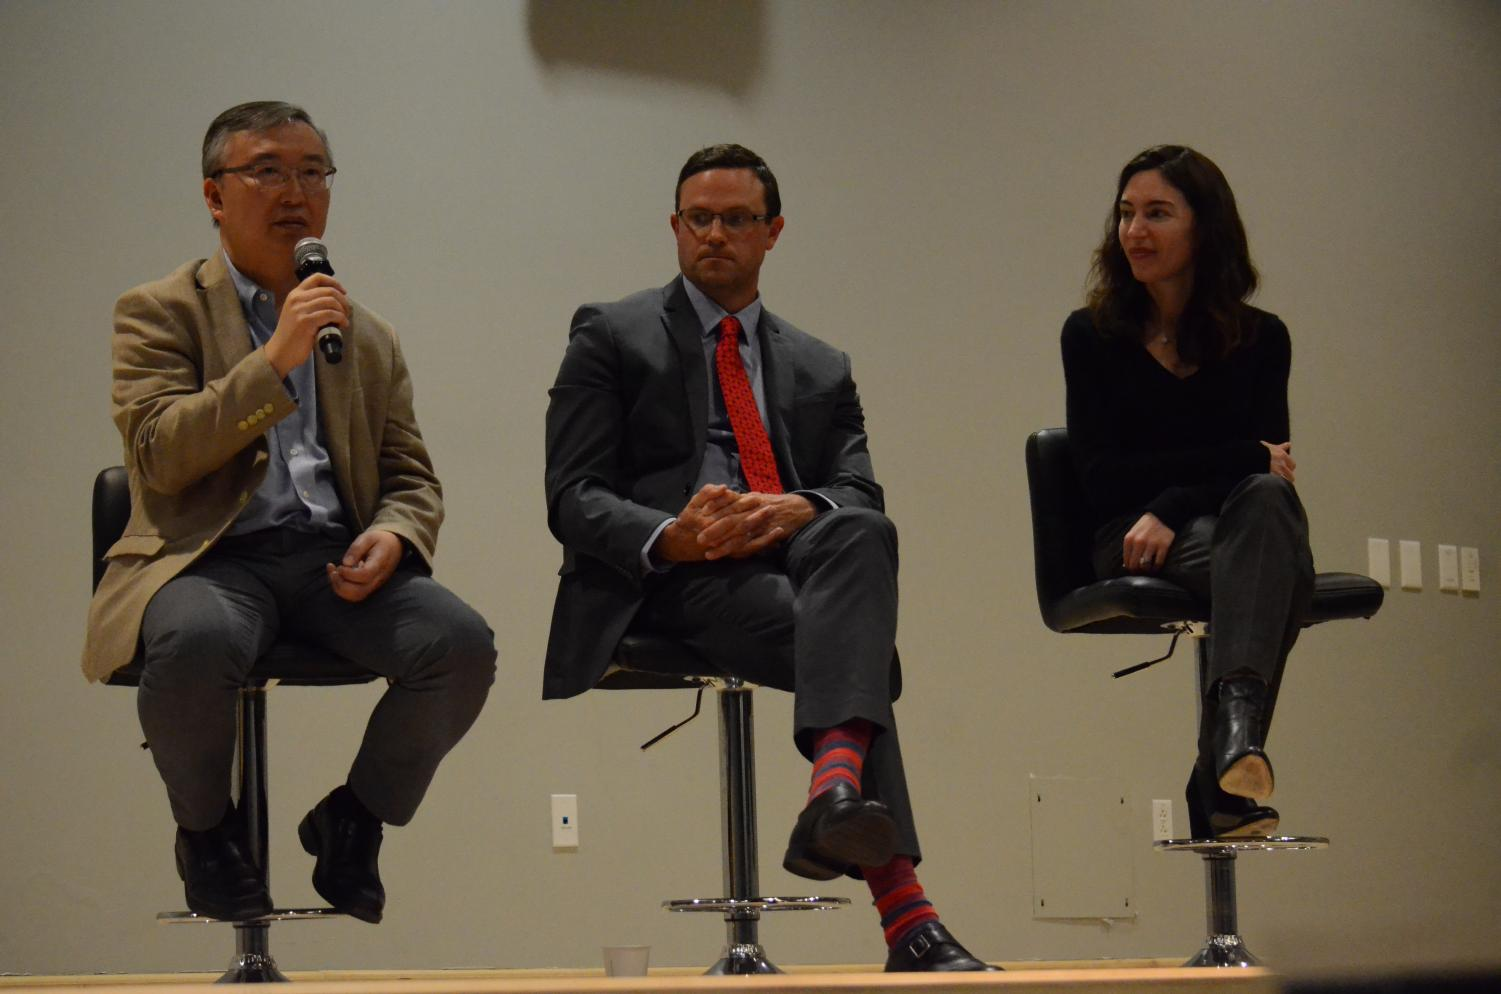 Dr. Lawrence Fung speaks during a panel at the Evening of Medicine event hosted by the upper school Medical Club last Friday. The panel Q&A consisted of three Stanford doctors: Dr. Lawrence Fung, a psychiatrist; Dr. Zachary Vaughn, an orthopedic surgeon; and Dr. Lisa Zaba, a dermatologist.